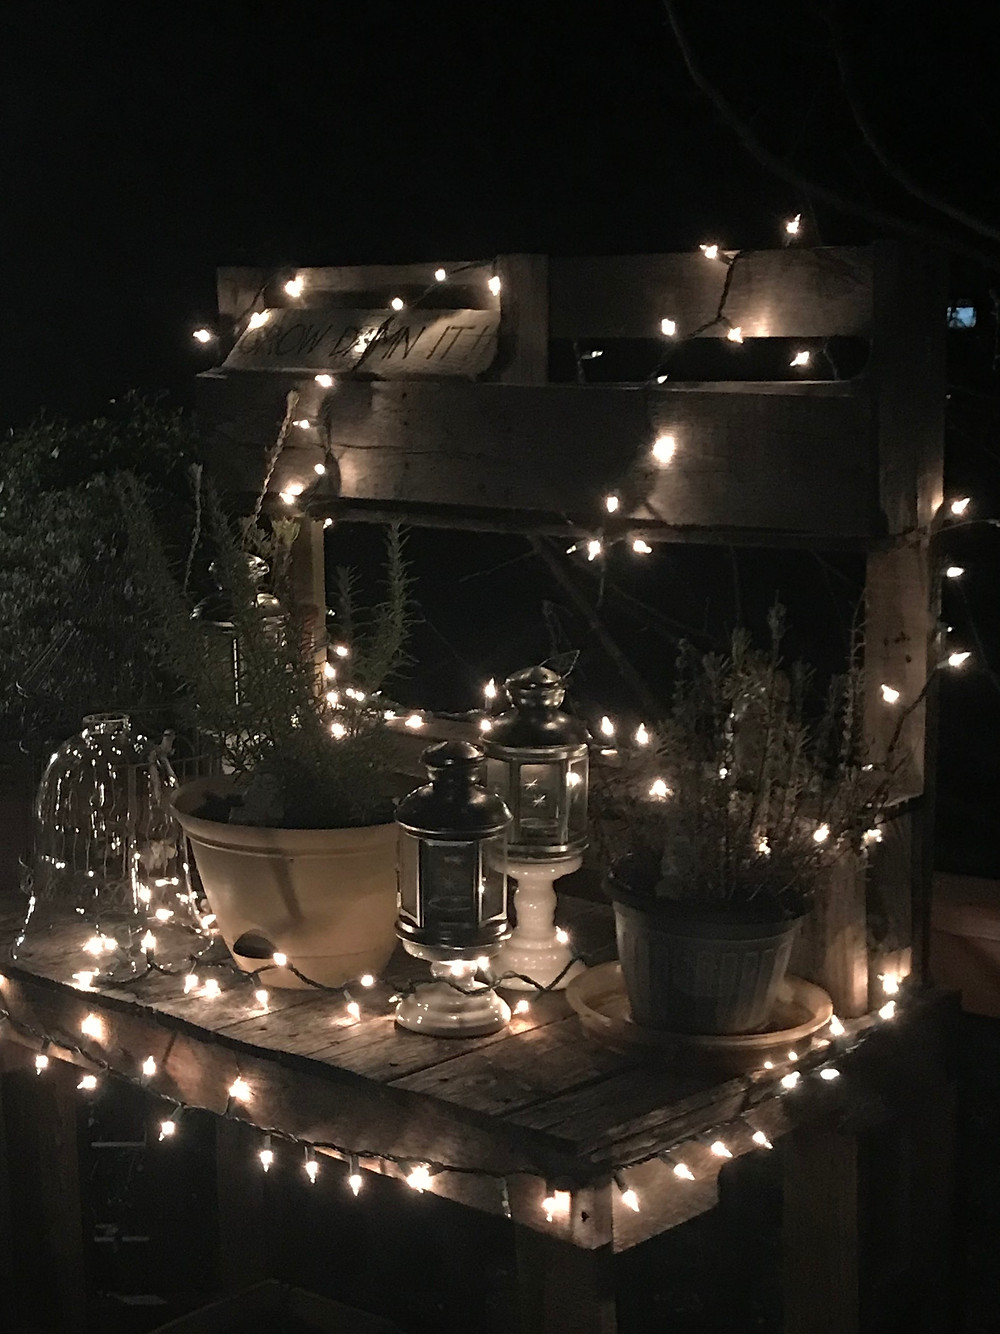 potting bench lit up